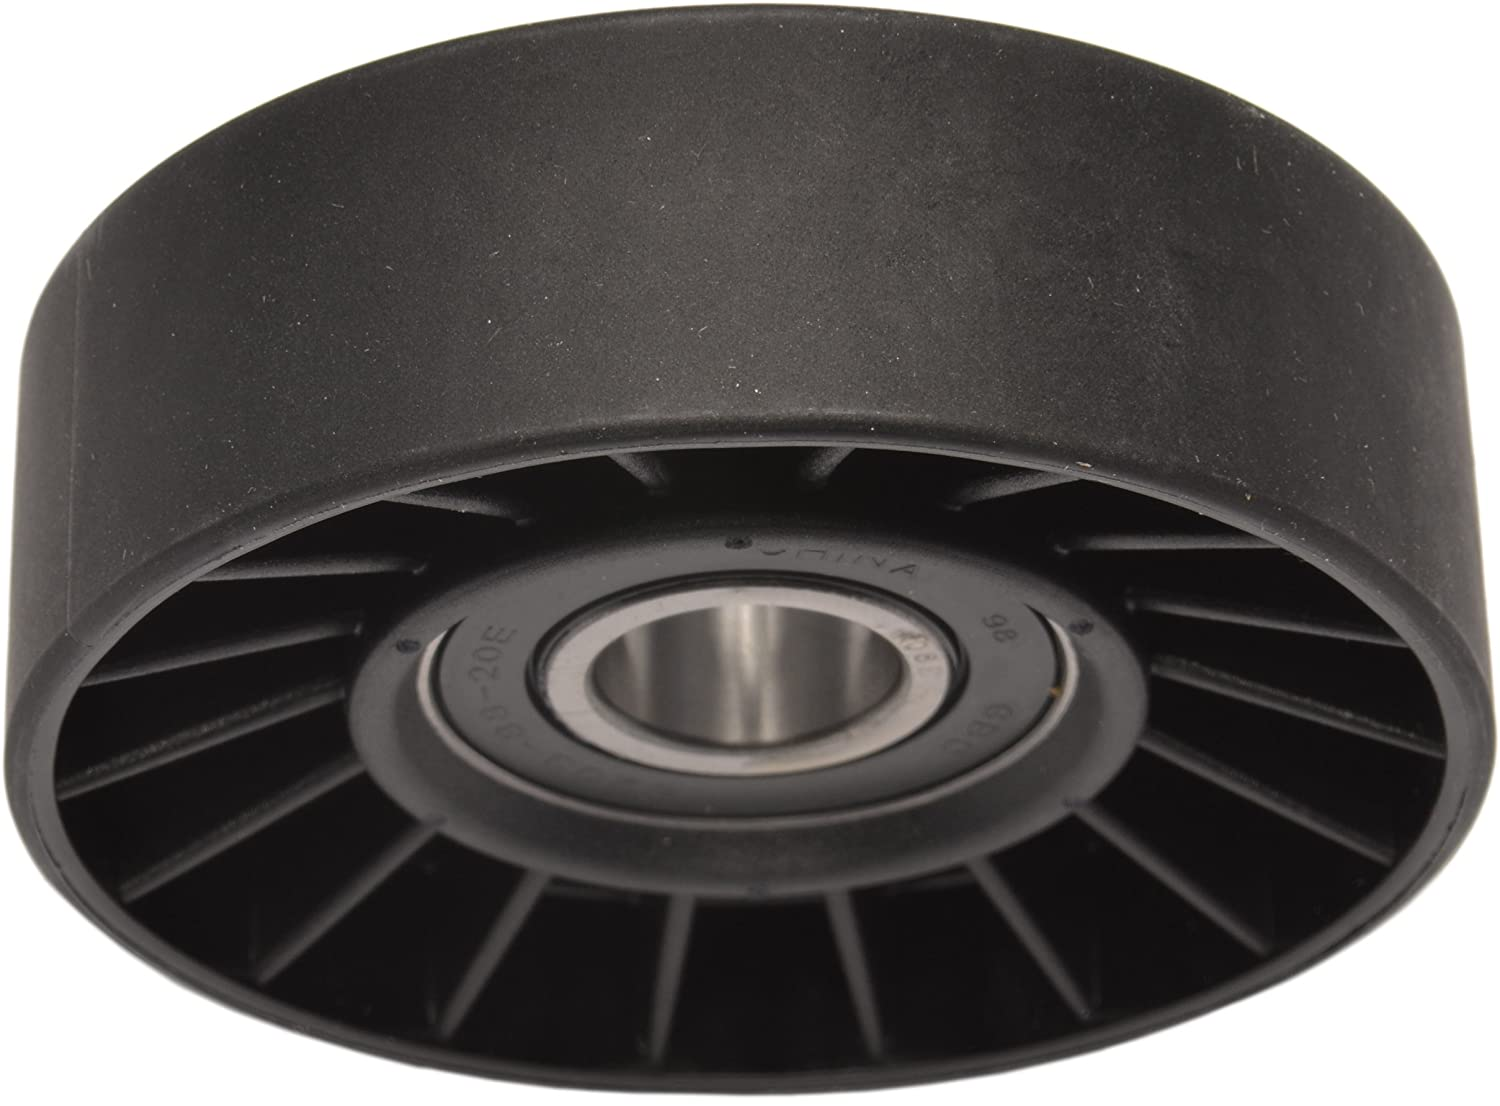 Continental Elite 49019 Accu-Drive Pulley Continental ContiTech GYB49019